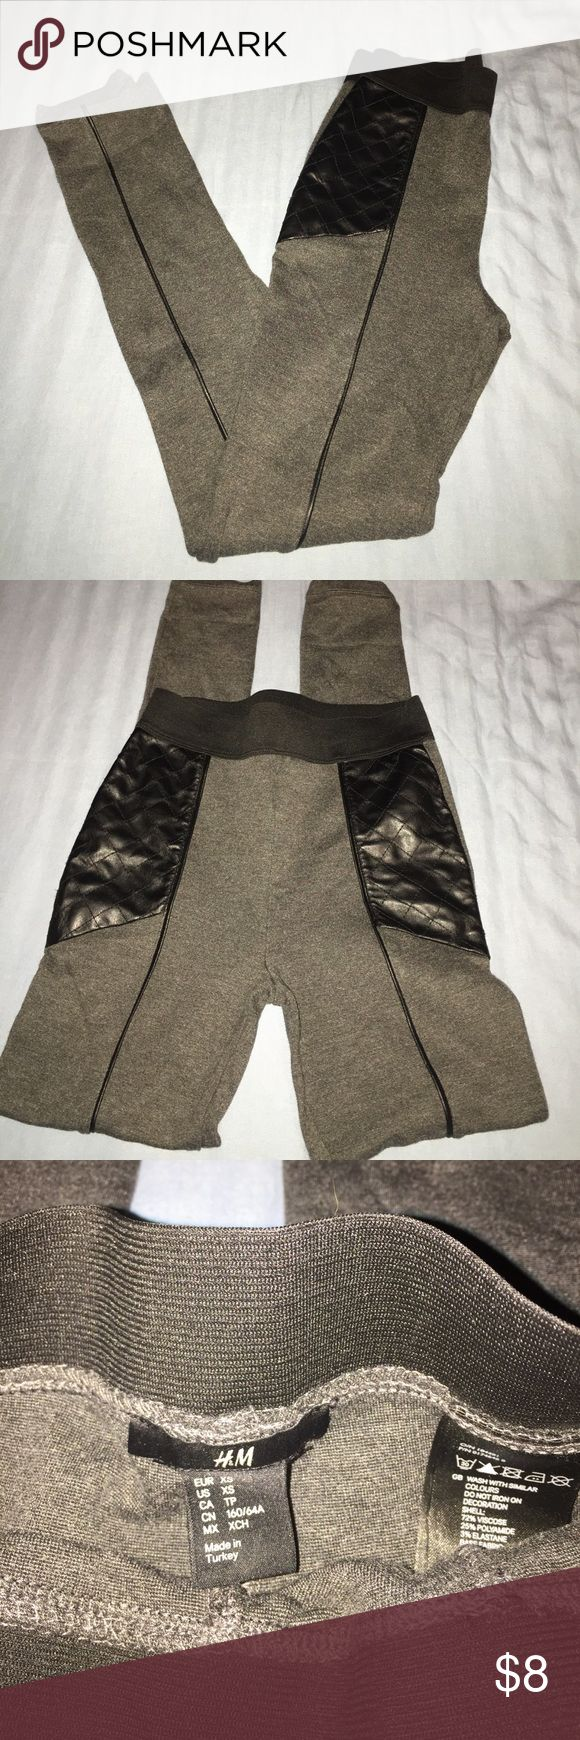 Super soft H&M leggings Super soft leggings. Excellent condition. Can dress them up or great for layers. H&M Pants Leggings